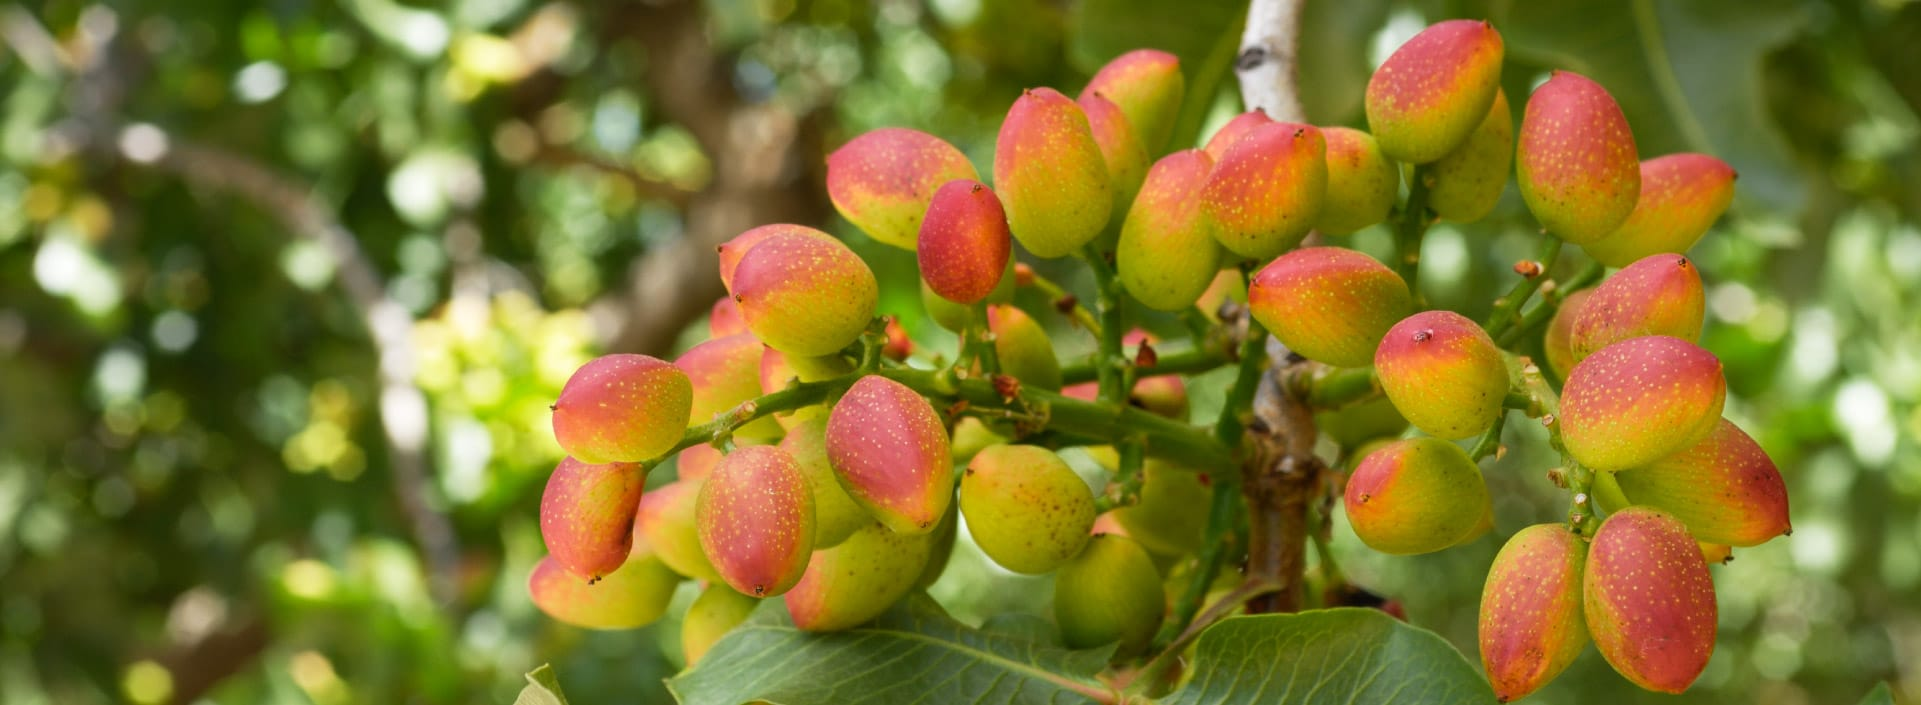 Close up of Ripening Pistachio on Tree